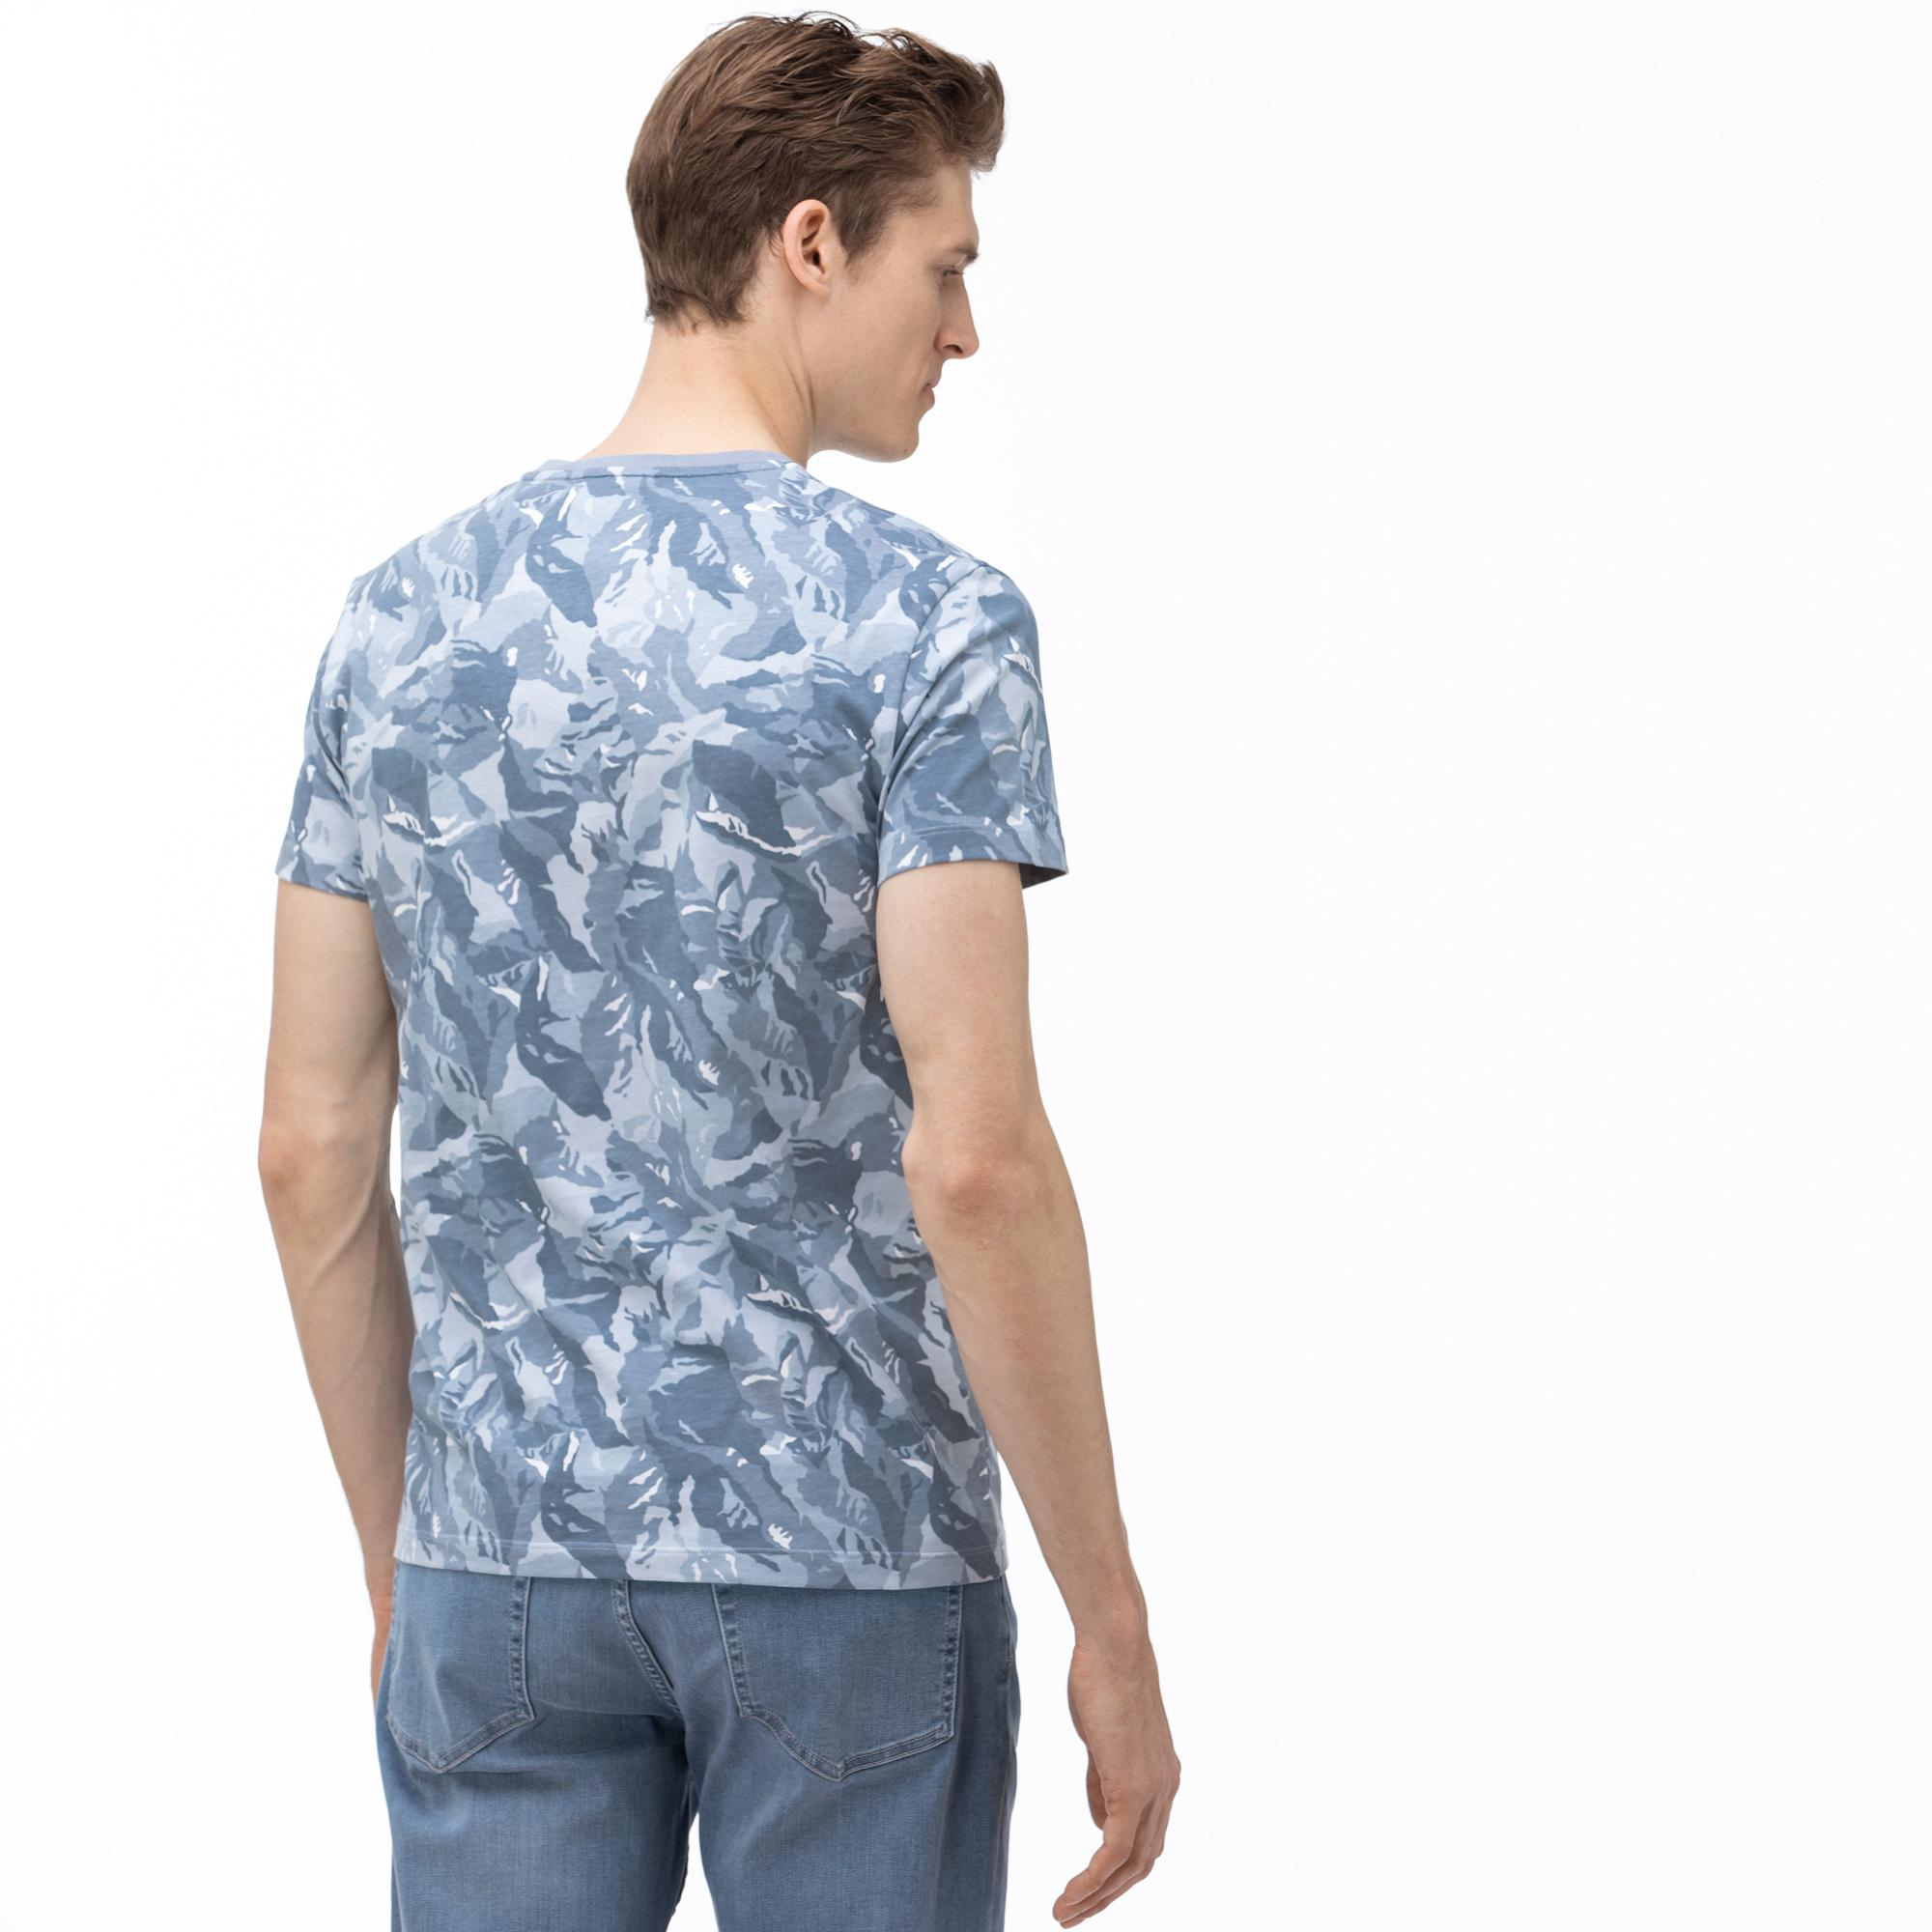 Lacoste Men's V-Neck Graphic T-Shirt